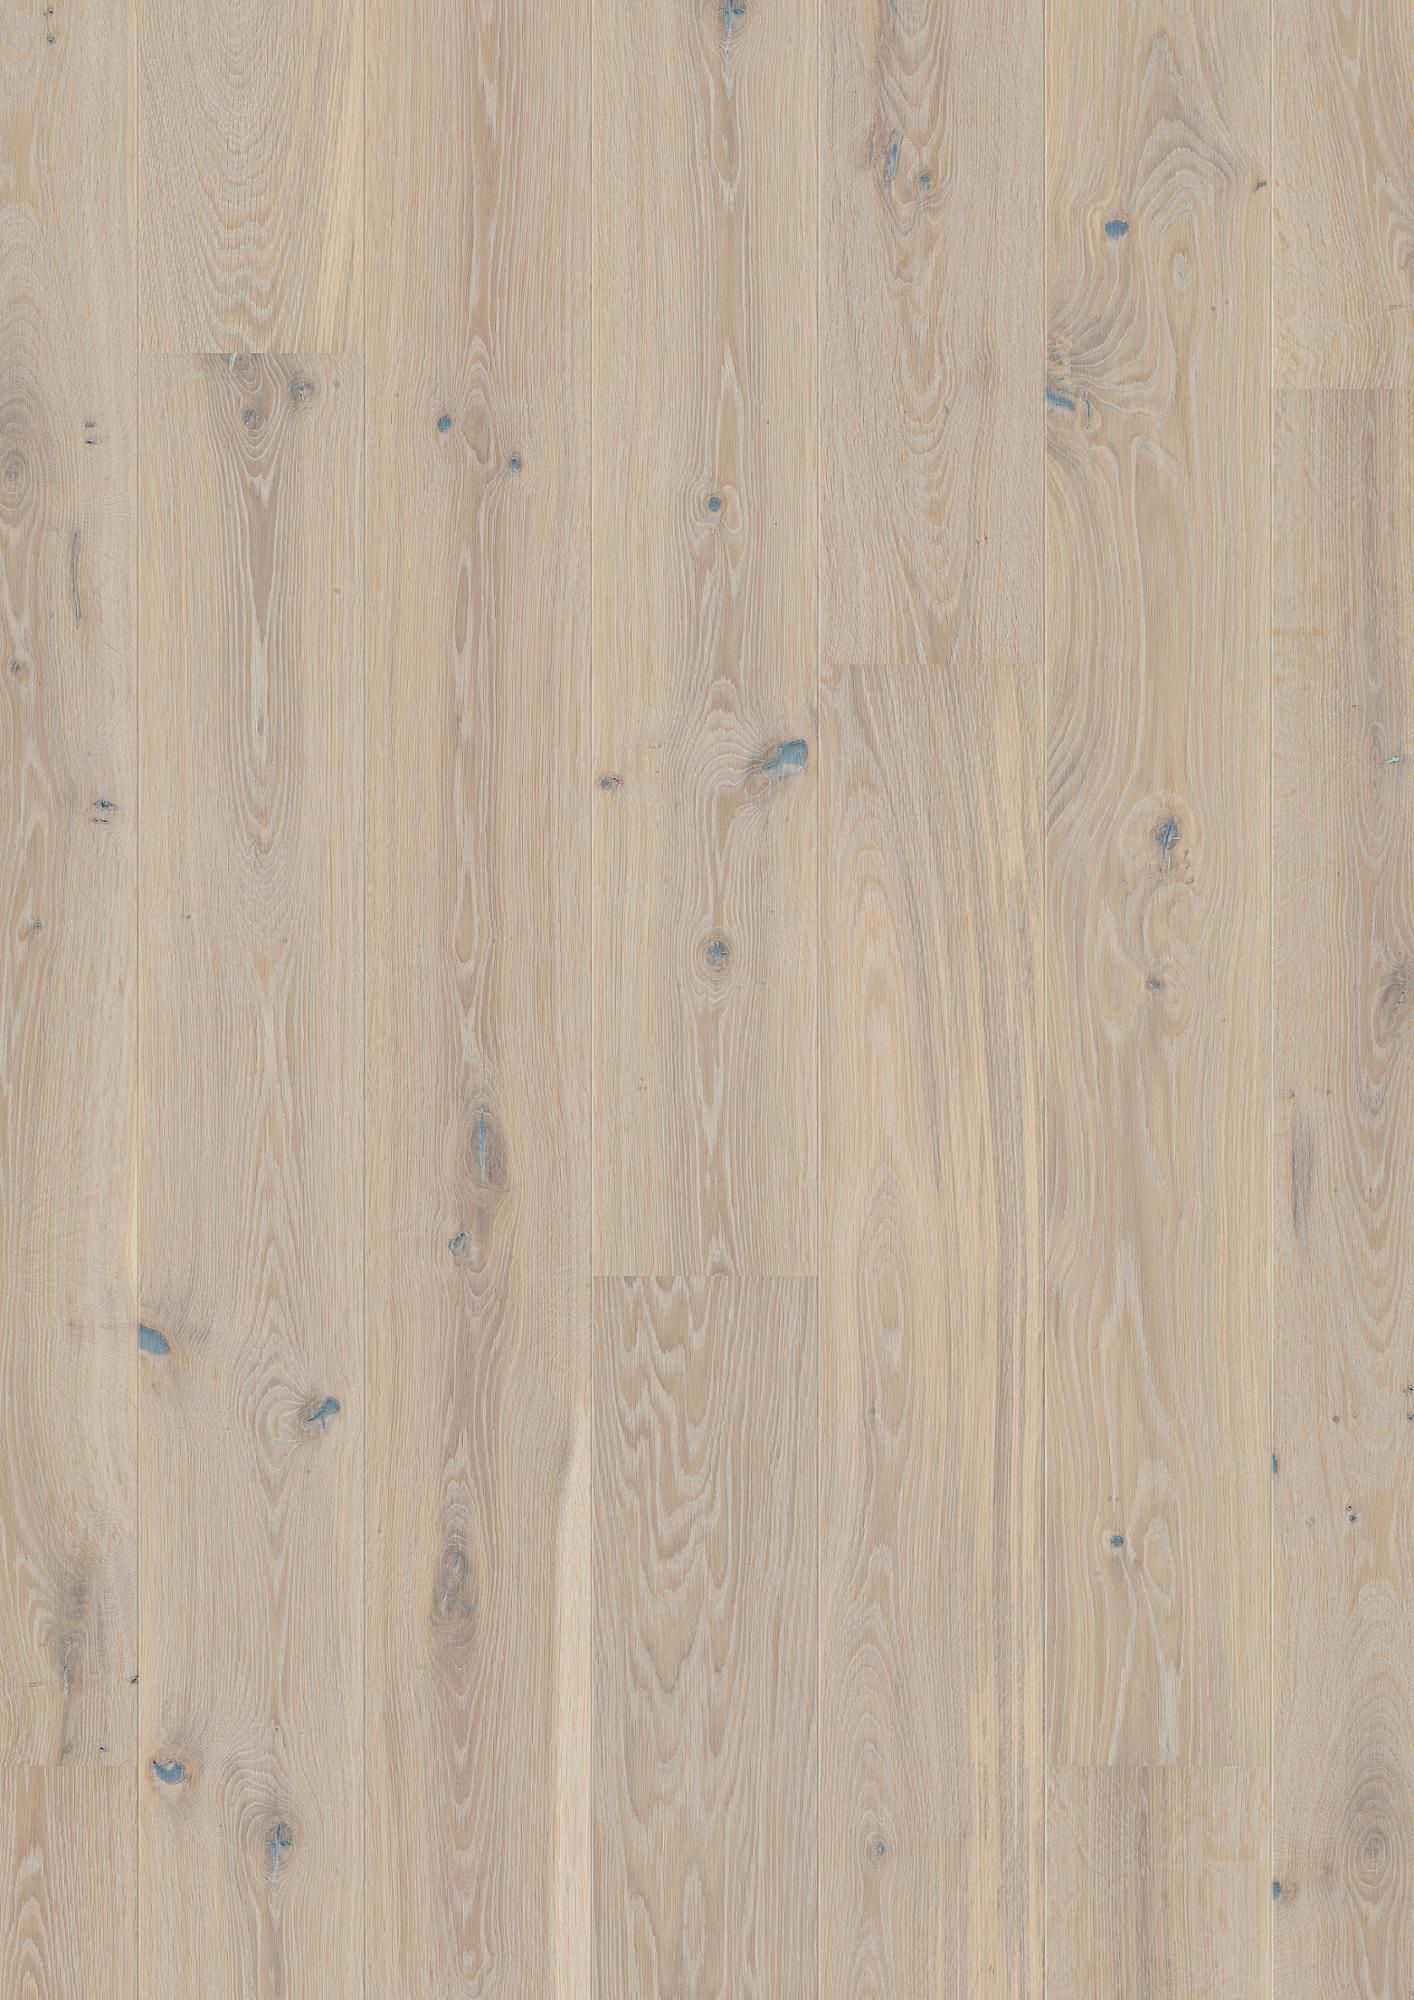 Oak Pale White Vivo, Plank 181, Live Pure lacquer, brushed, beveled 2V, 14x181x2200mm